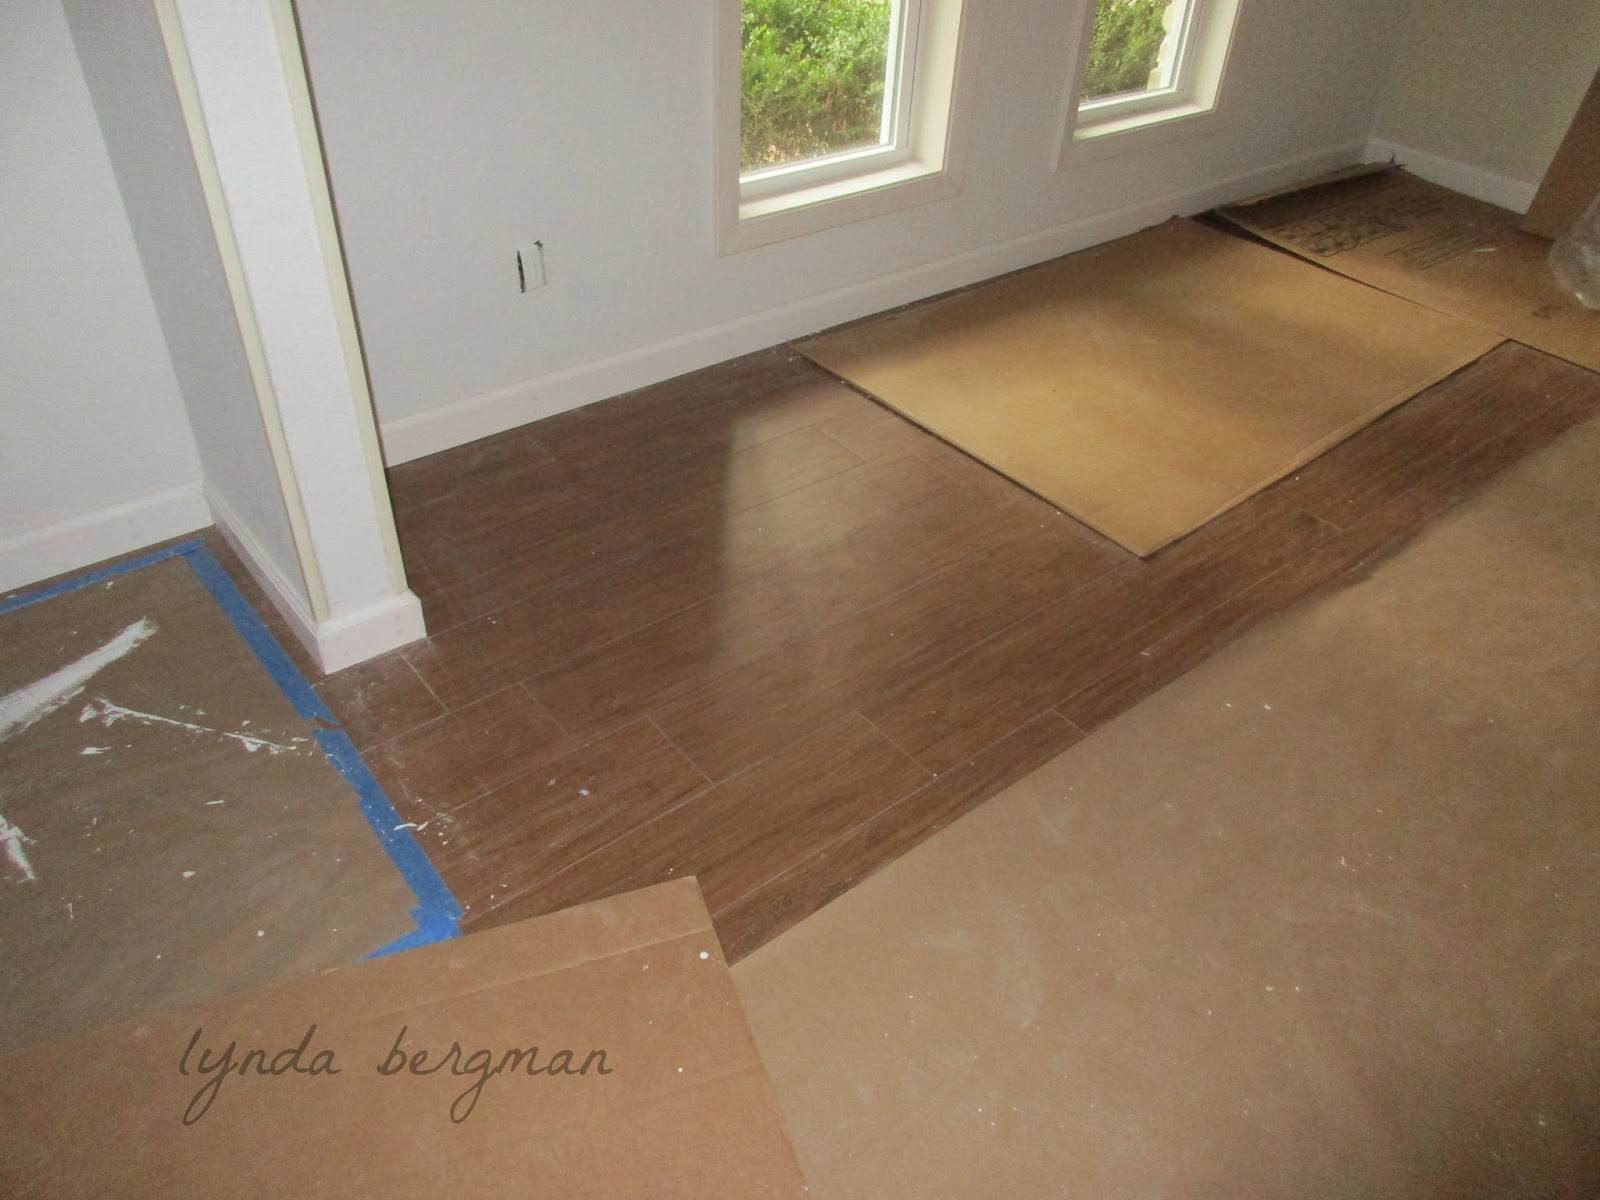 Lynda bergman decorative artisan tile flooring that looks like wood Tile looks like wood floor